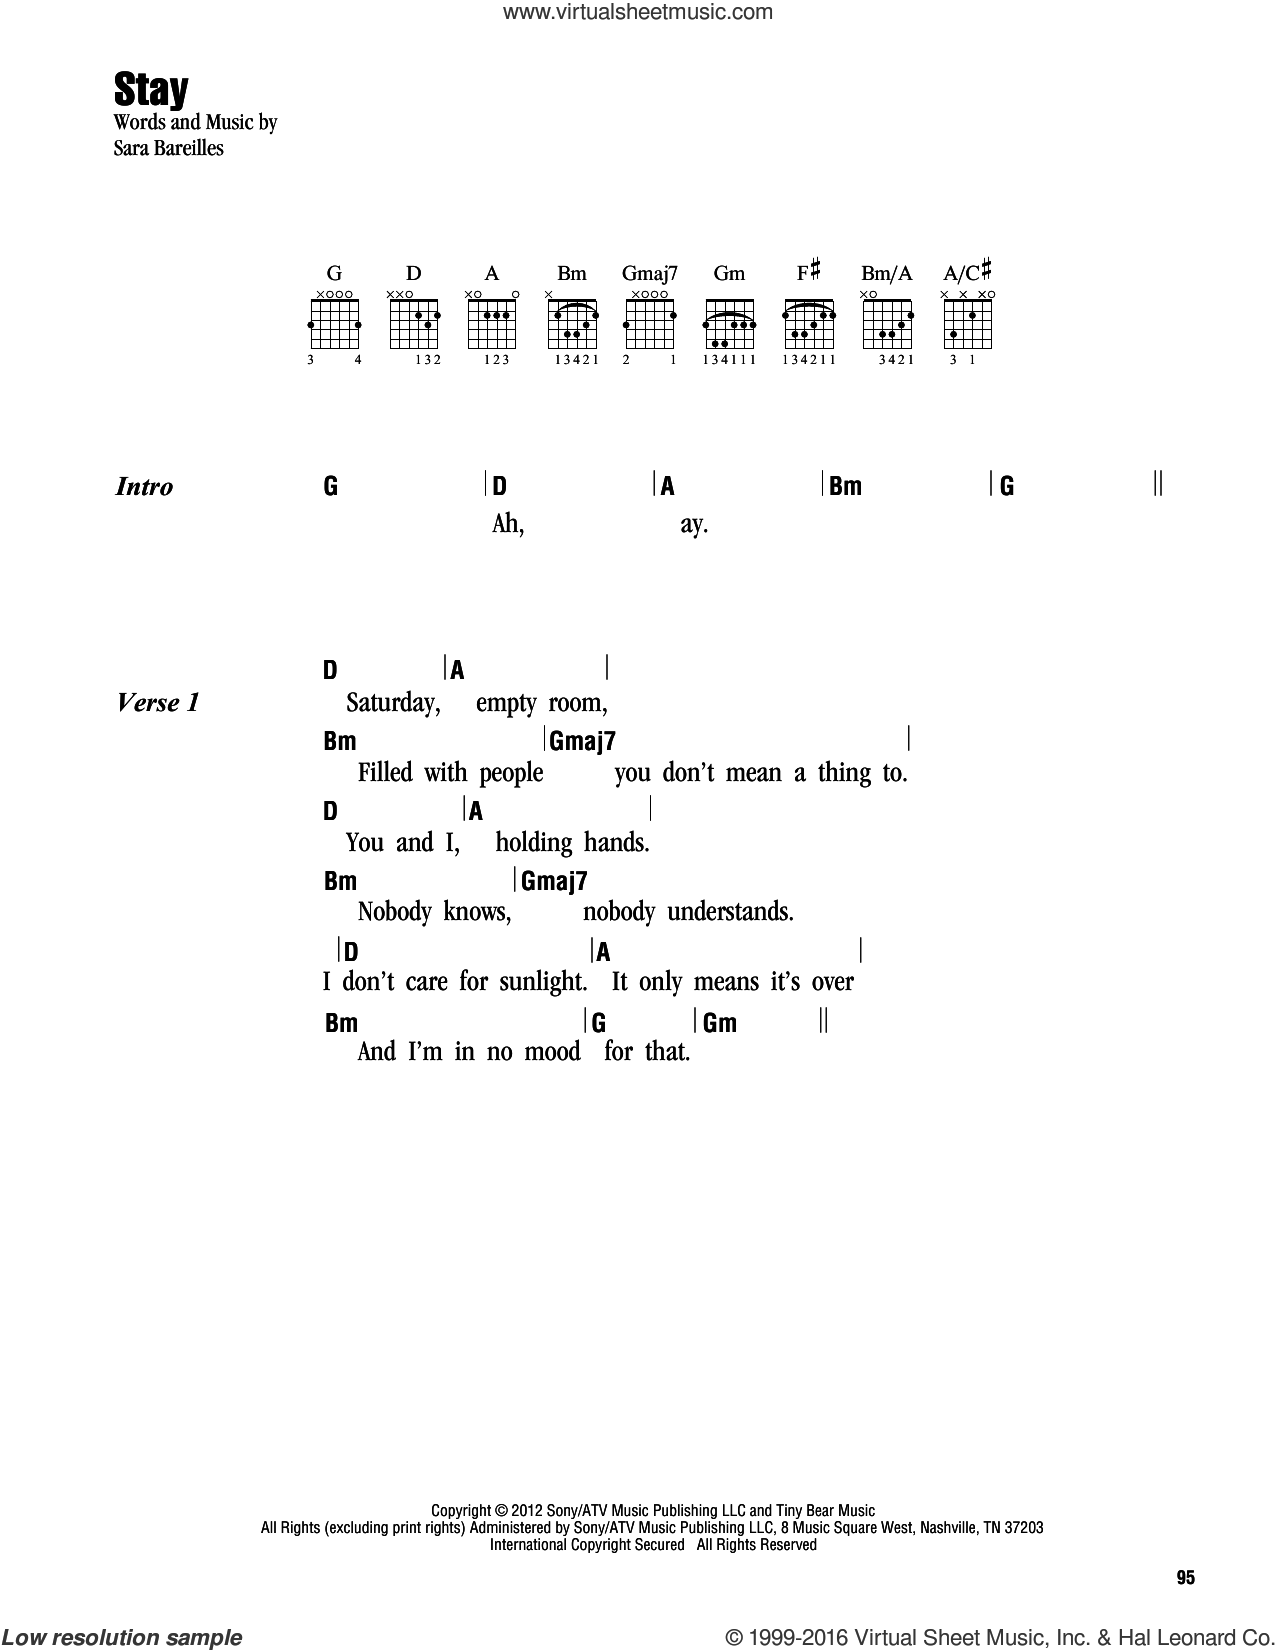 Stay sheet music for guitar (chords) by Sara Bareilles. Score Image Preview.